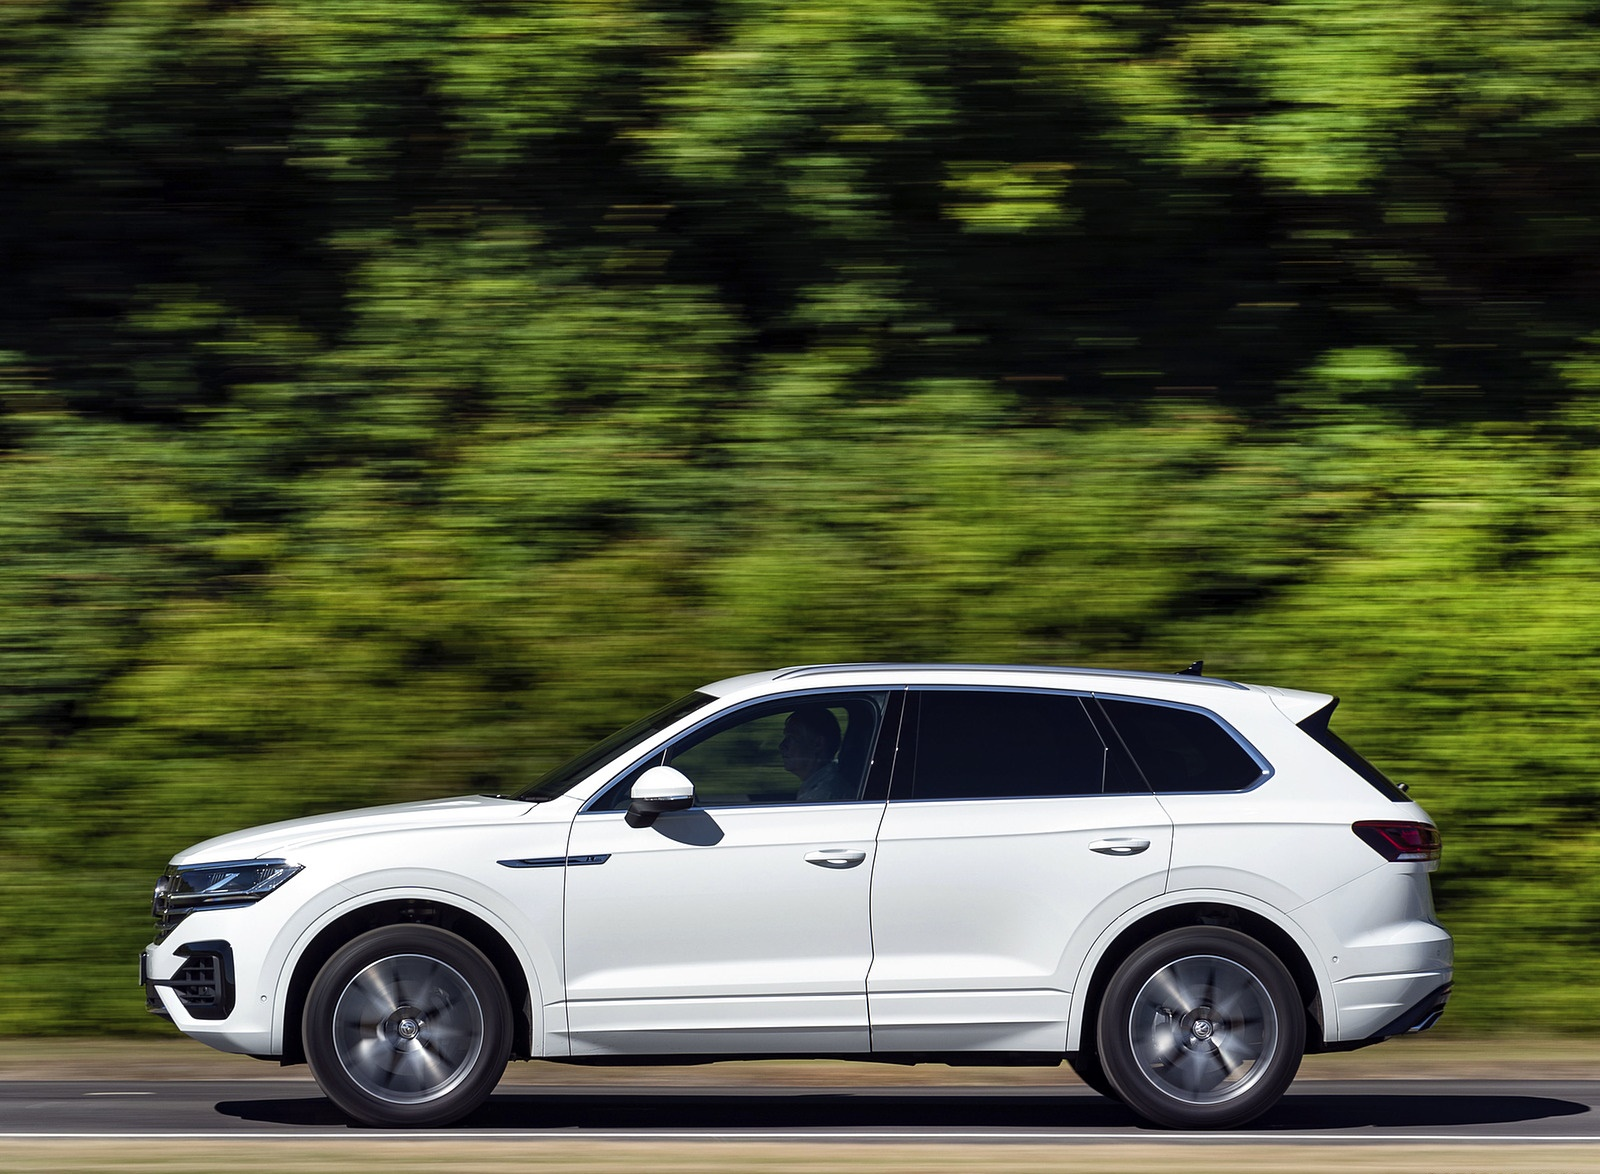 2019 Volkswagen Touareg V6 TDI R-Line (UK-Spec) Side Wallpapers (3)